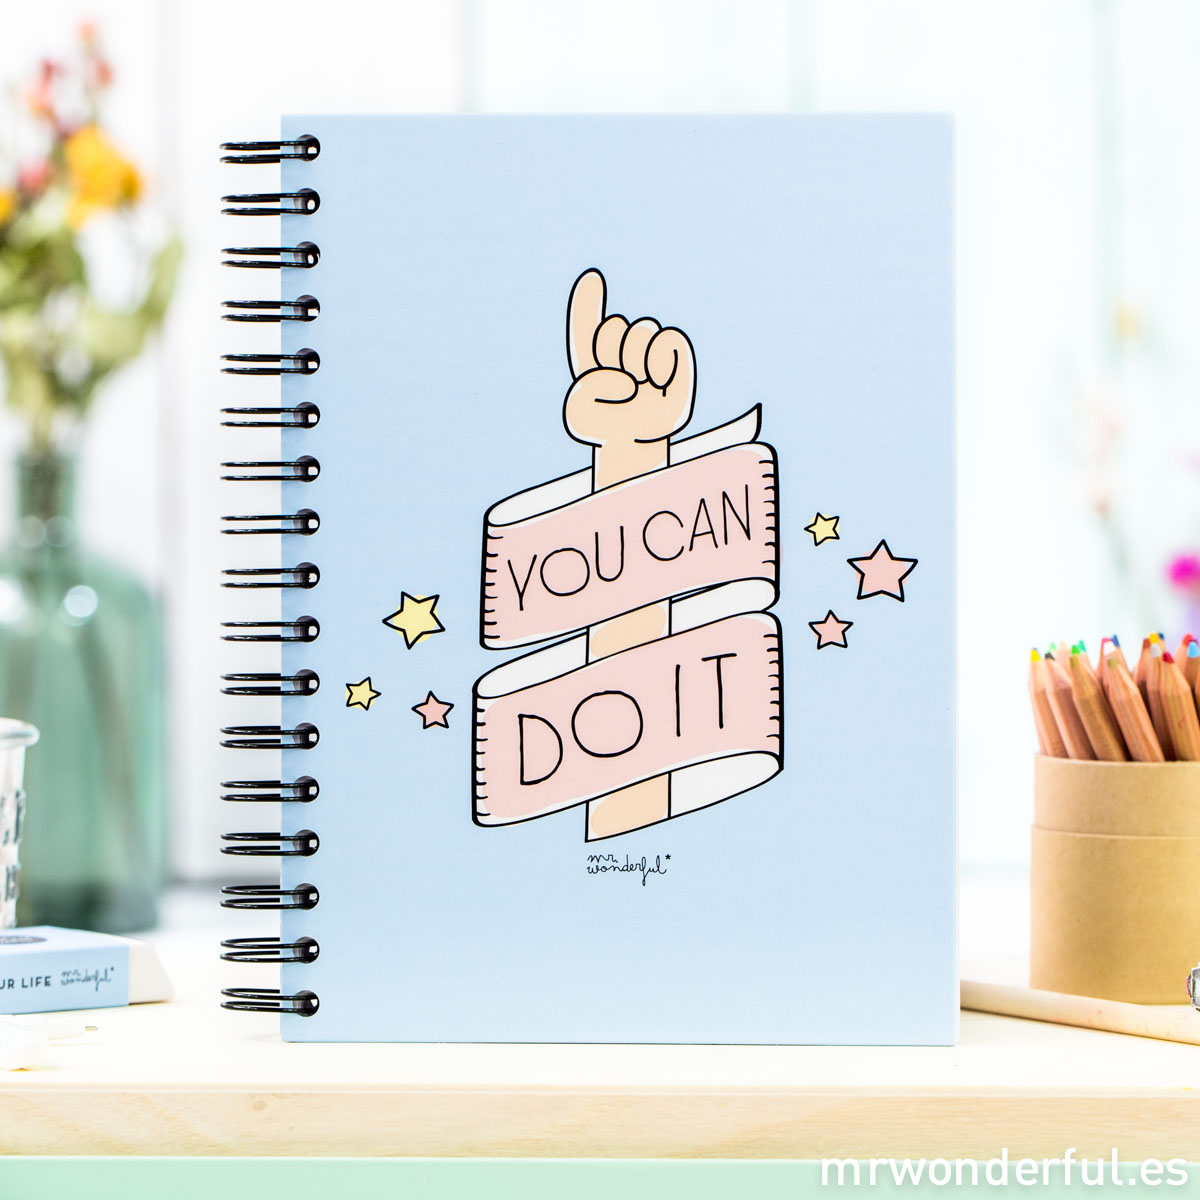 mrwonderful_LIB24A_libreta-color_you-can-do-it-2